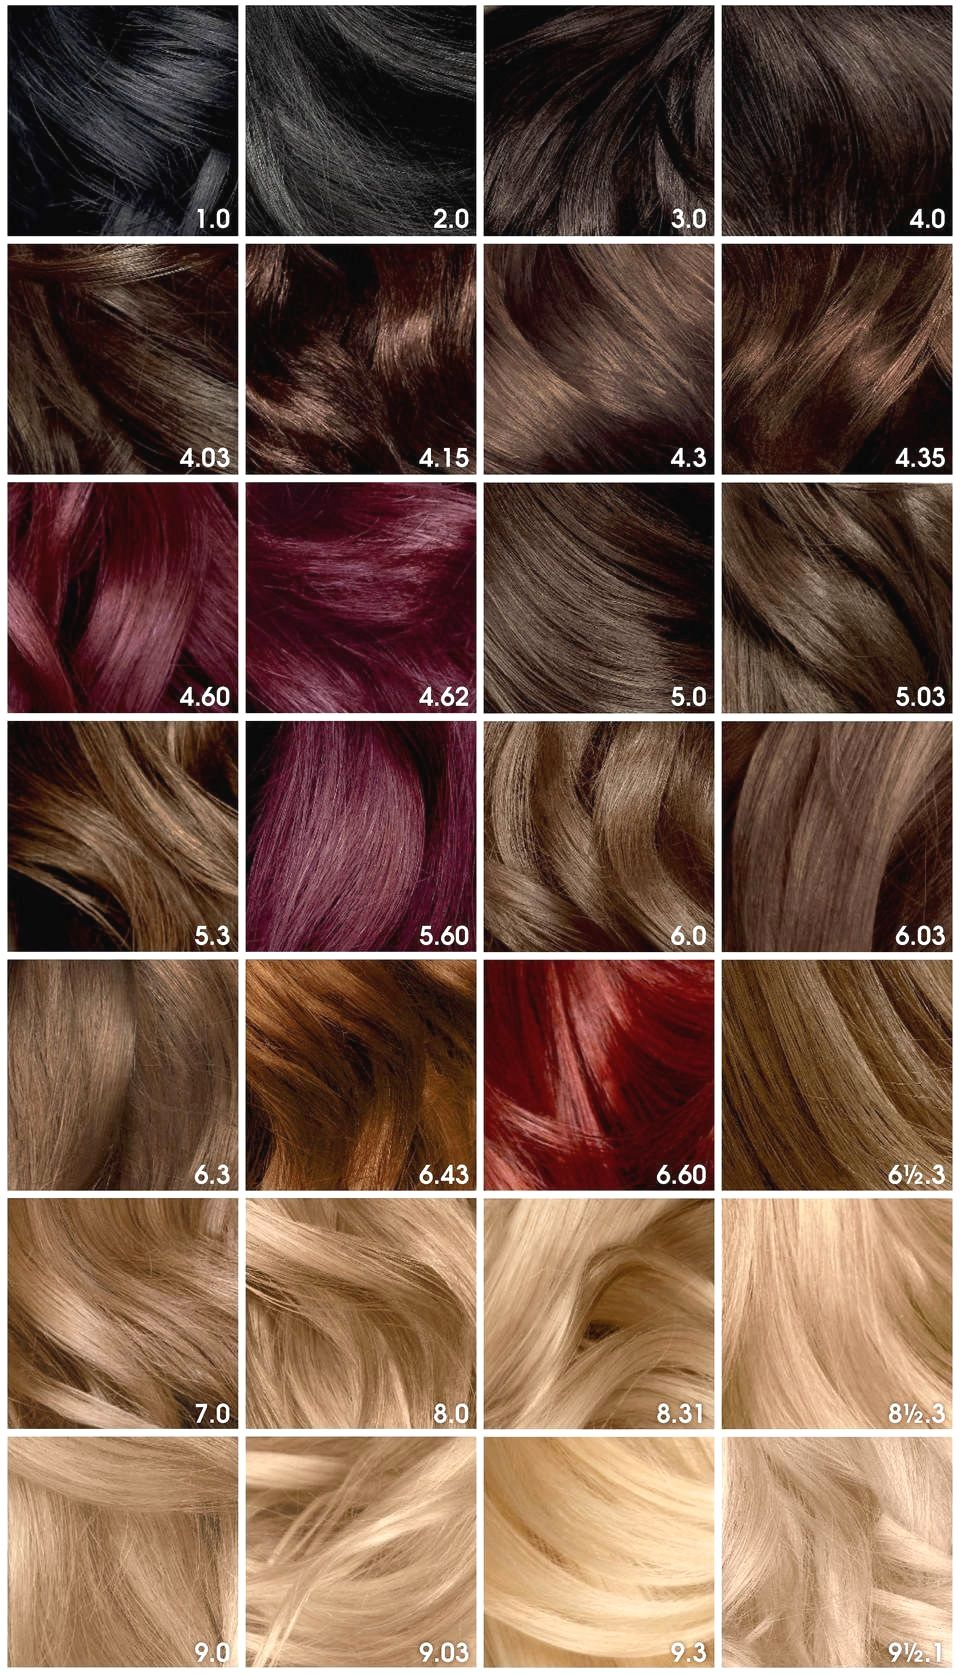 Pin By Marco Latif On Beauty Olia Hair Color Hair Color Chart Hair Color Shades